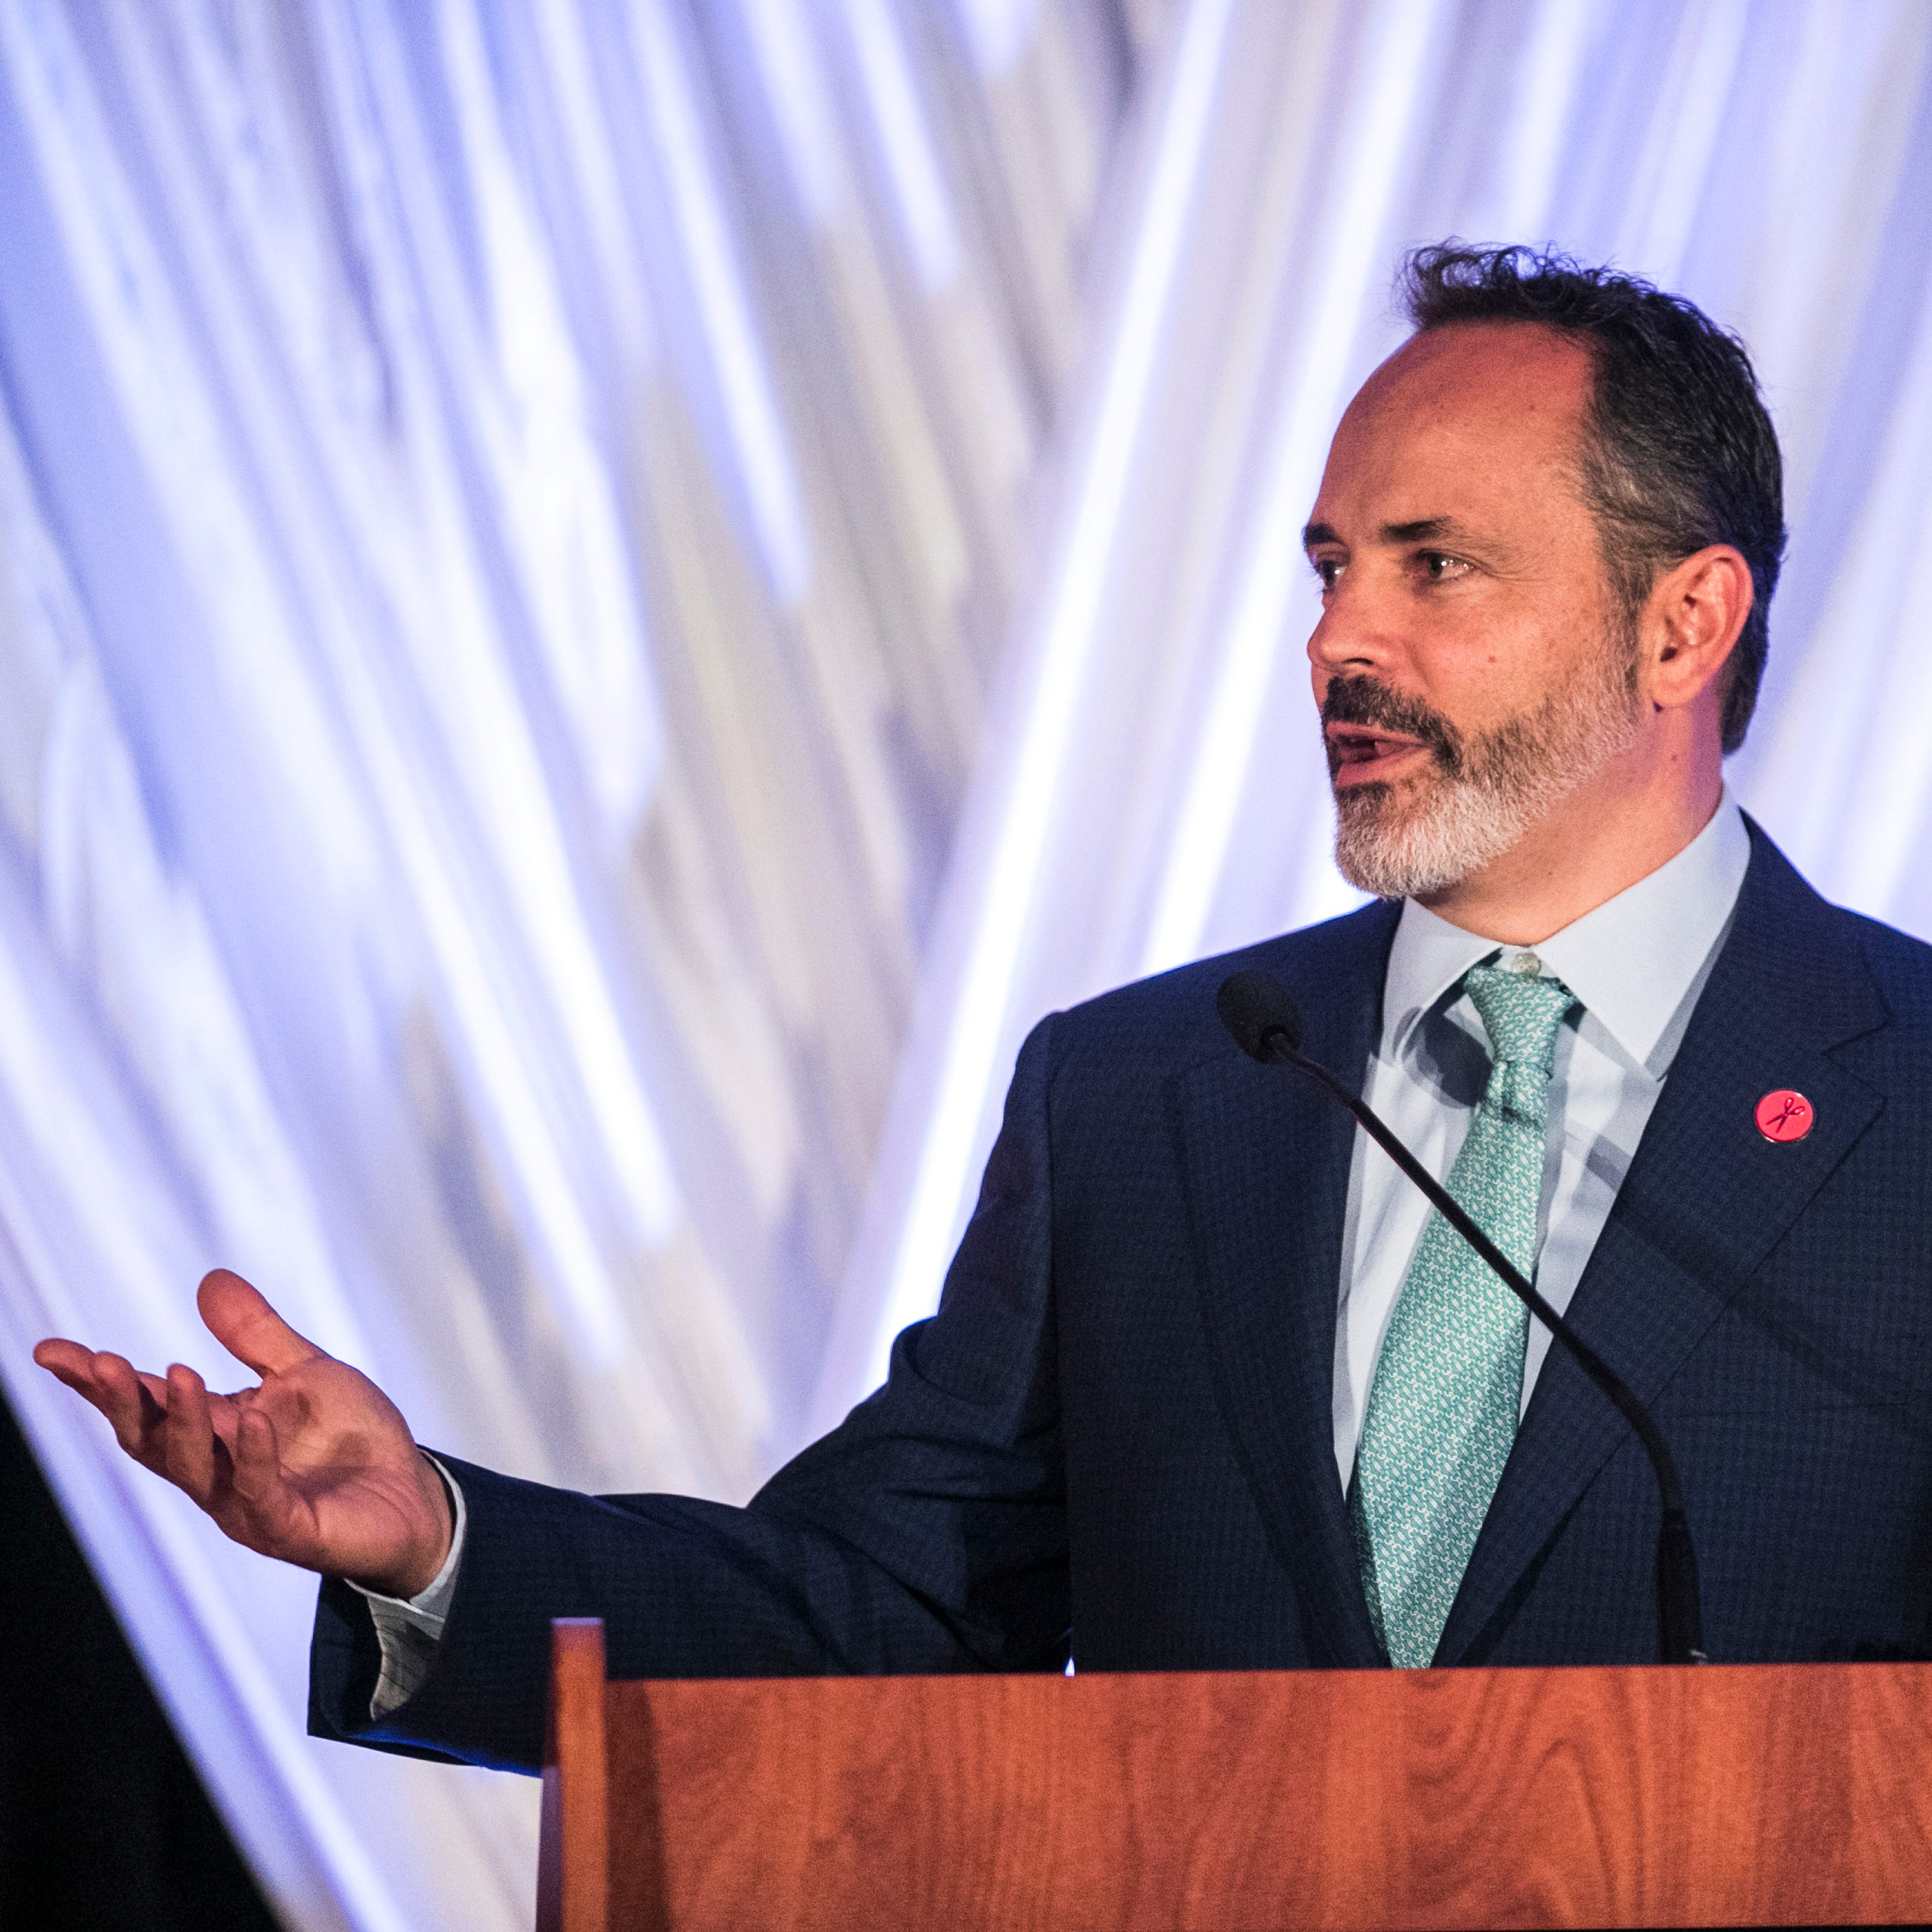 Gov. Matt Bevin said 'You bet I'm running again' as he announced his intent to run for governor again at the dinner for Kentucky Republicans at the annual Lincoln Dinner in Lexington Saturday night. Aug. 25, 2018